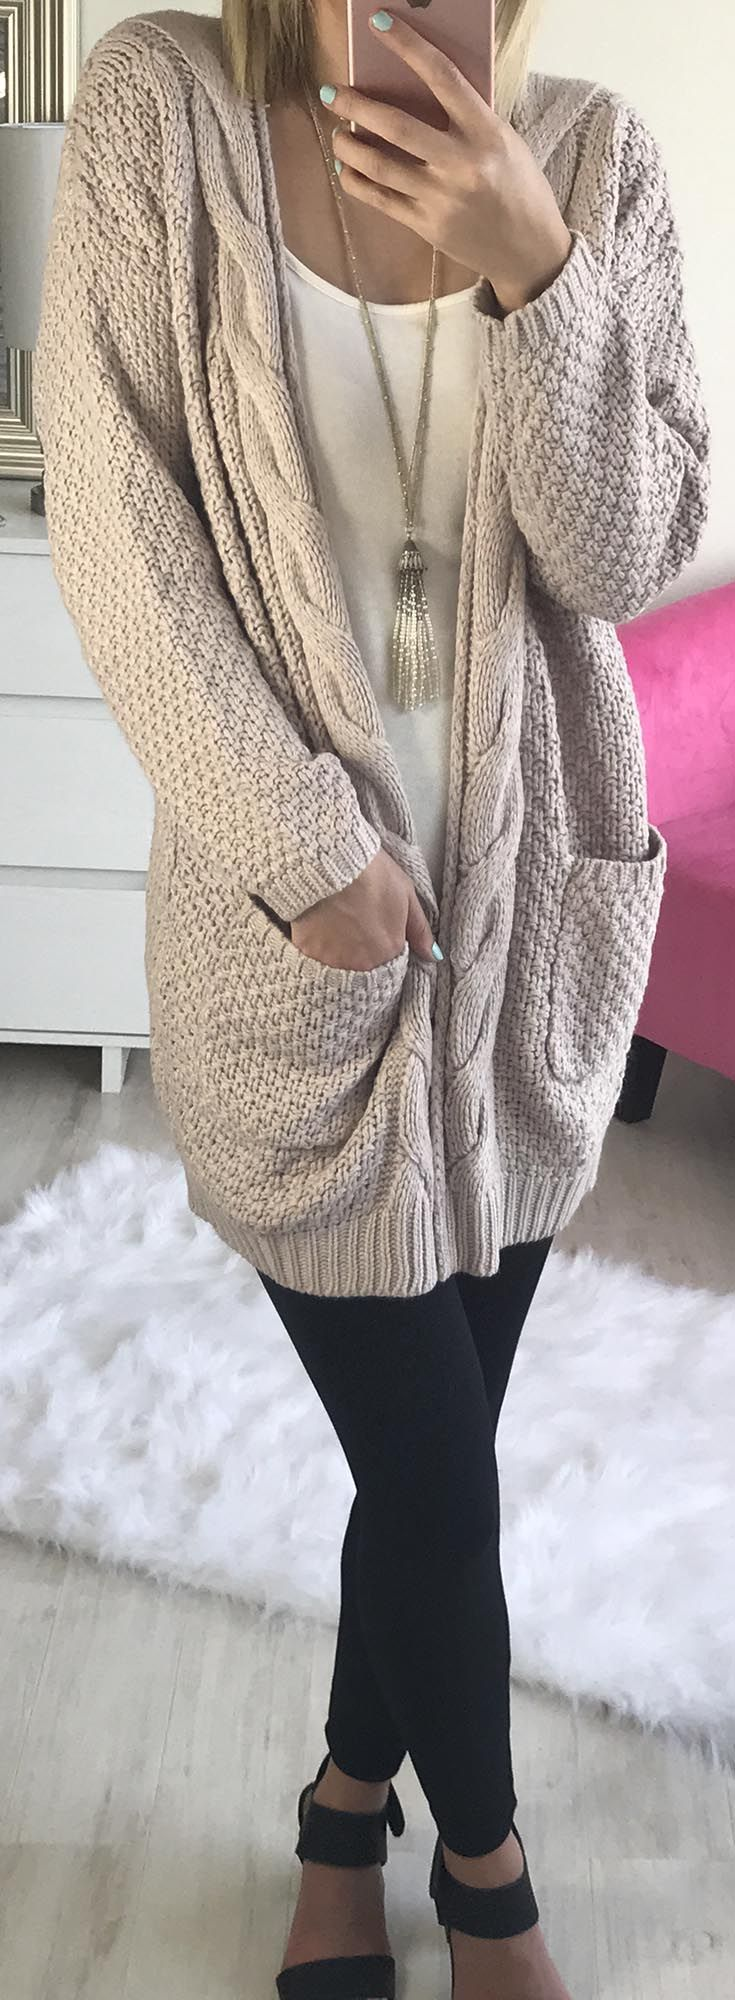 Chunky Cardi Fall Outfit ideas